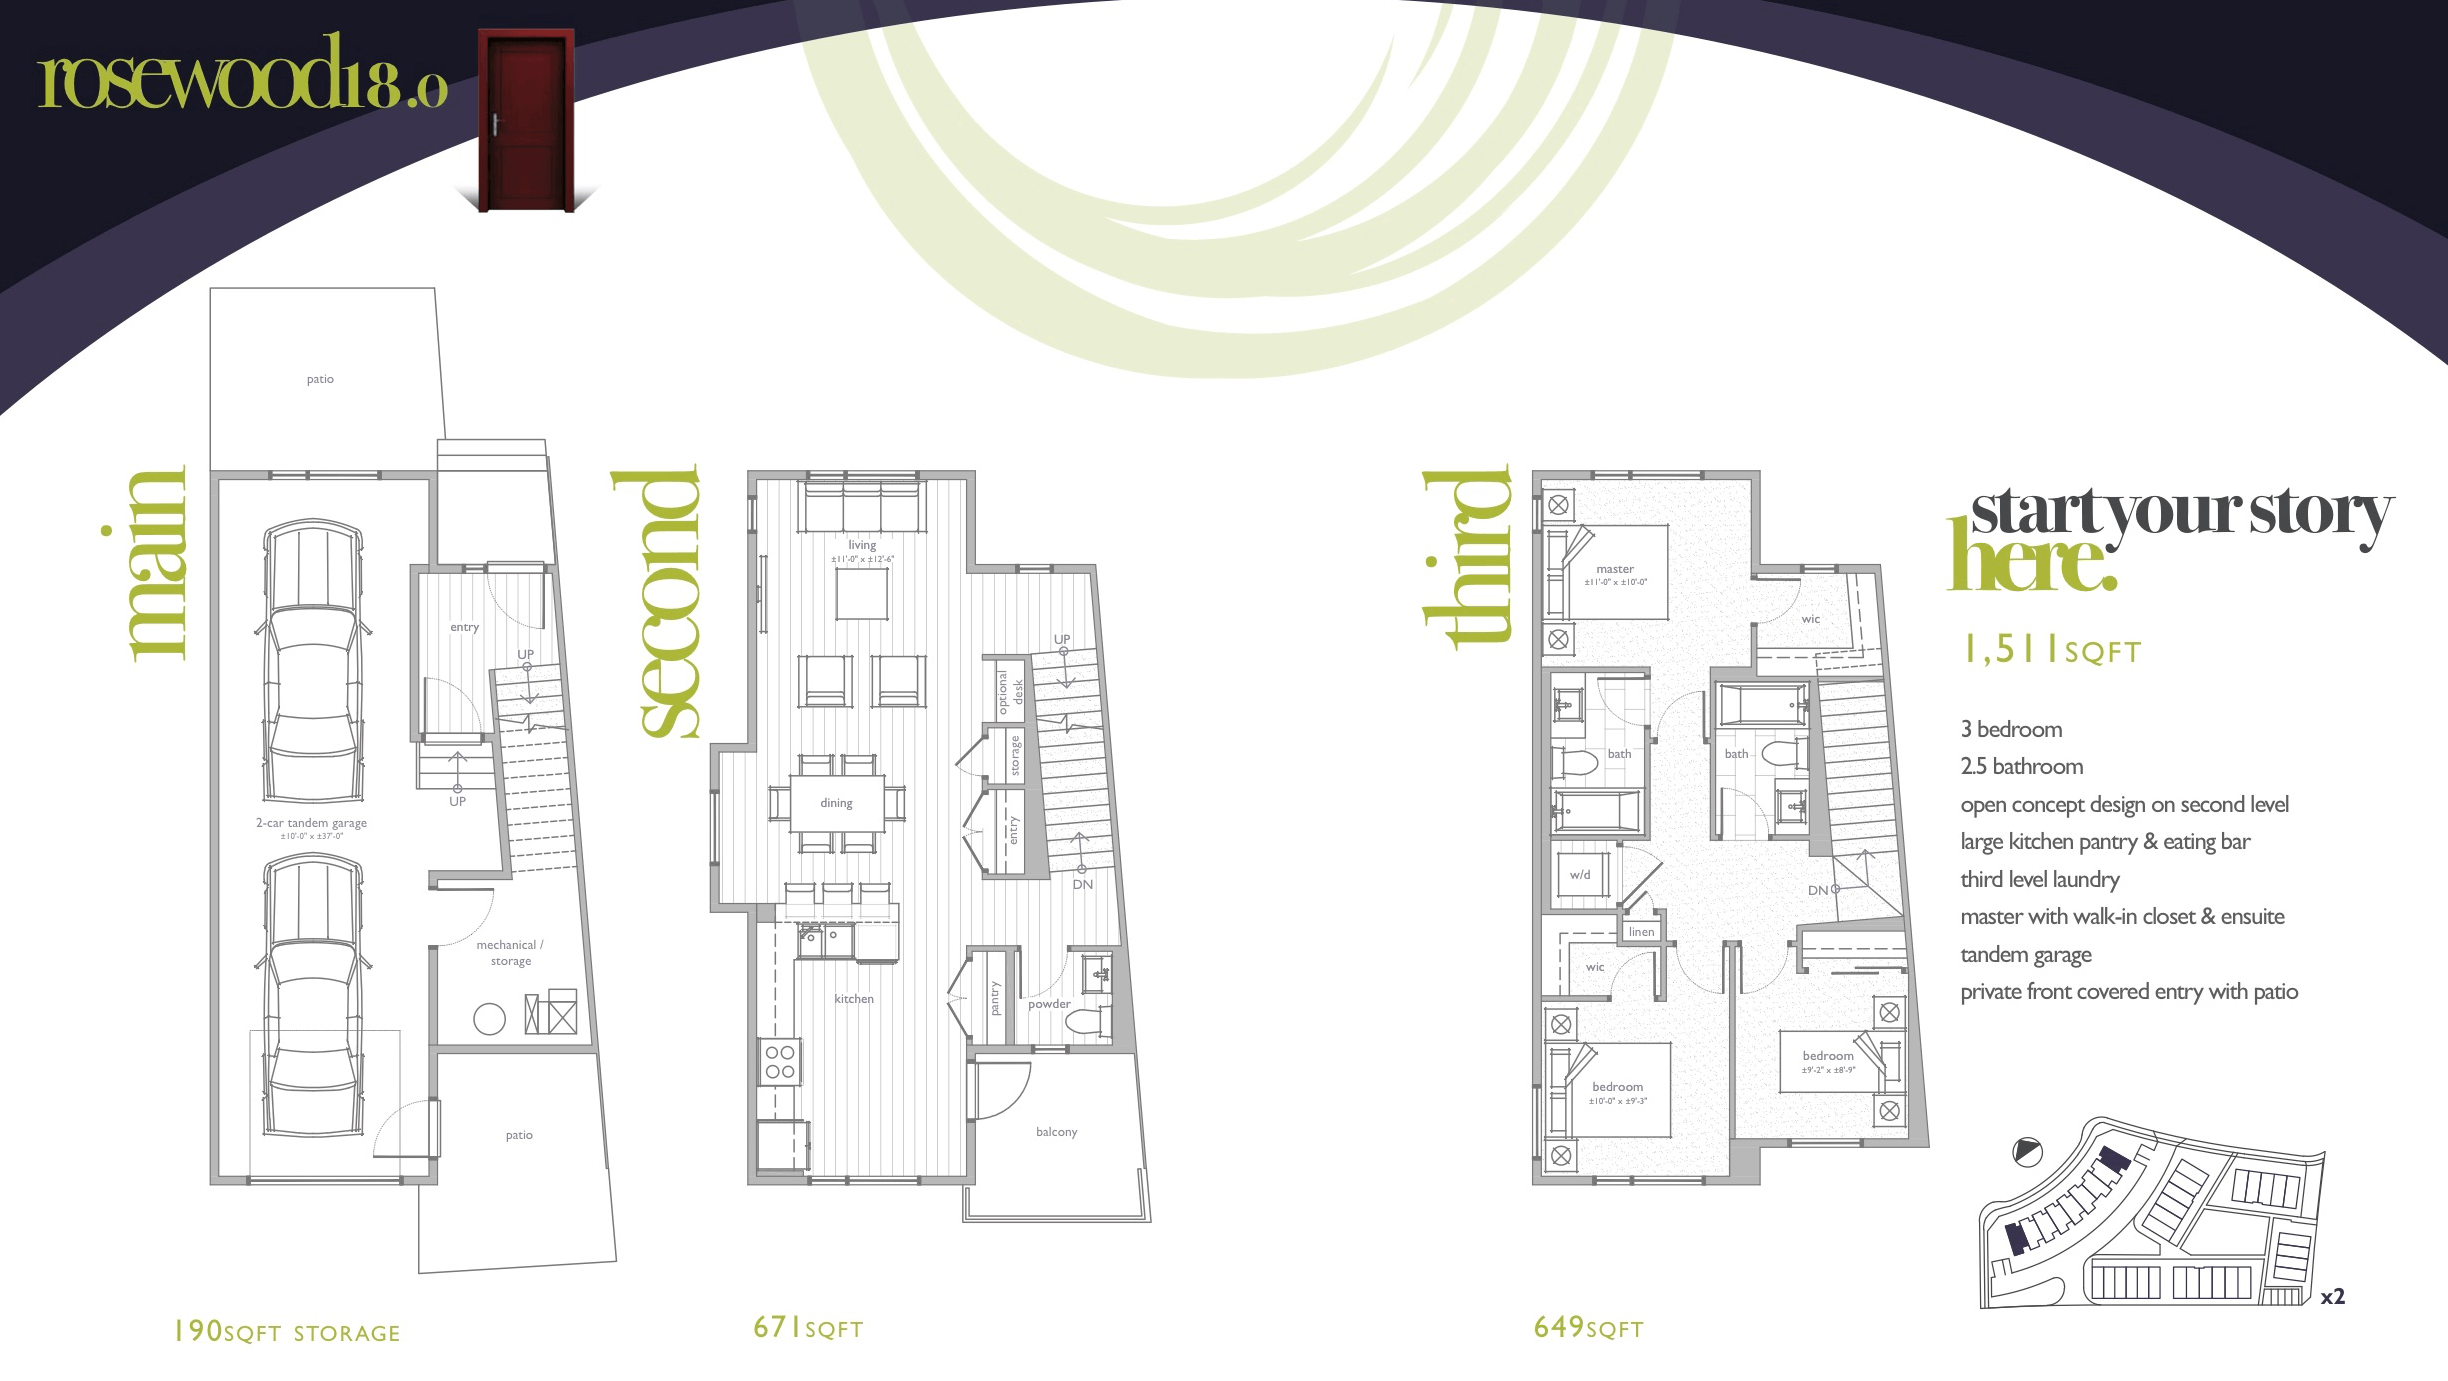 The Best Townhome Designs for Multi-Generational Living Rosewood18.o Floorplan Image